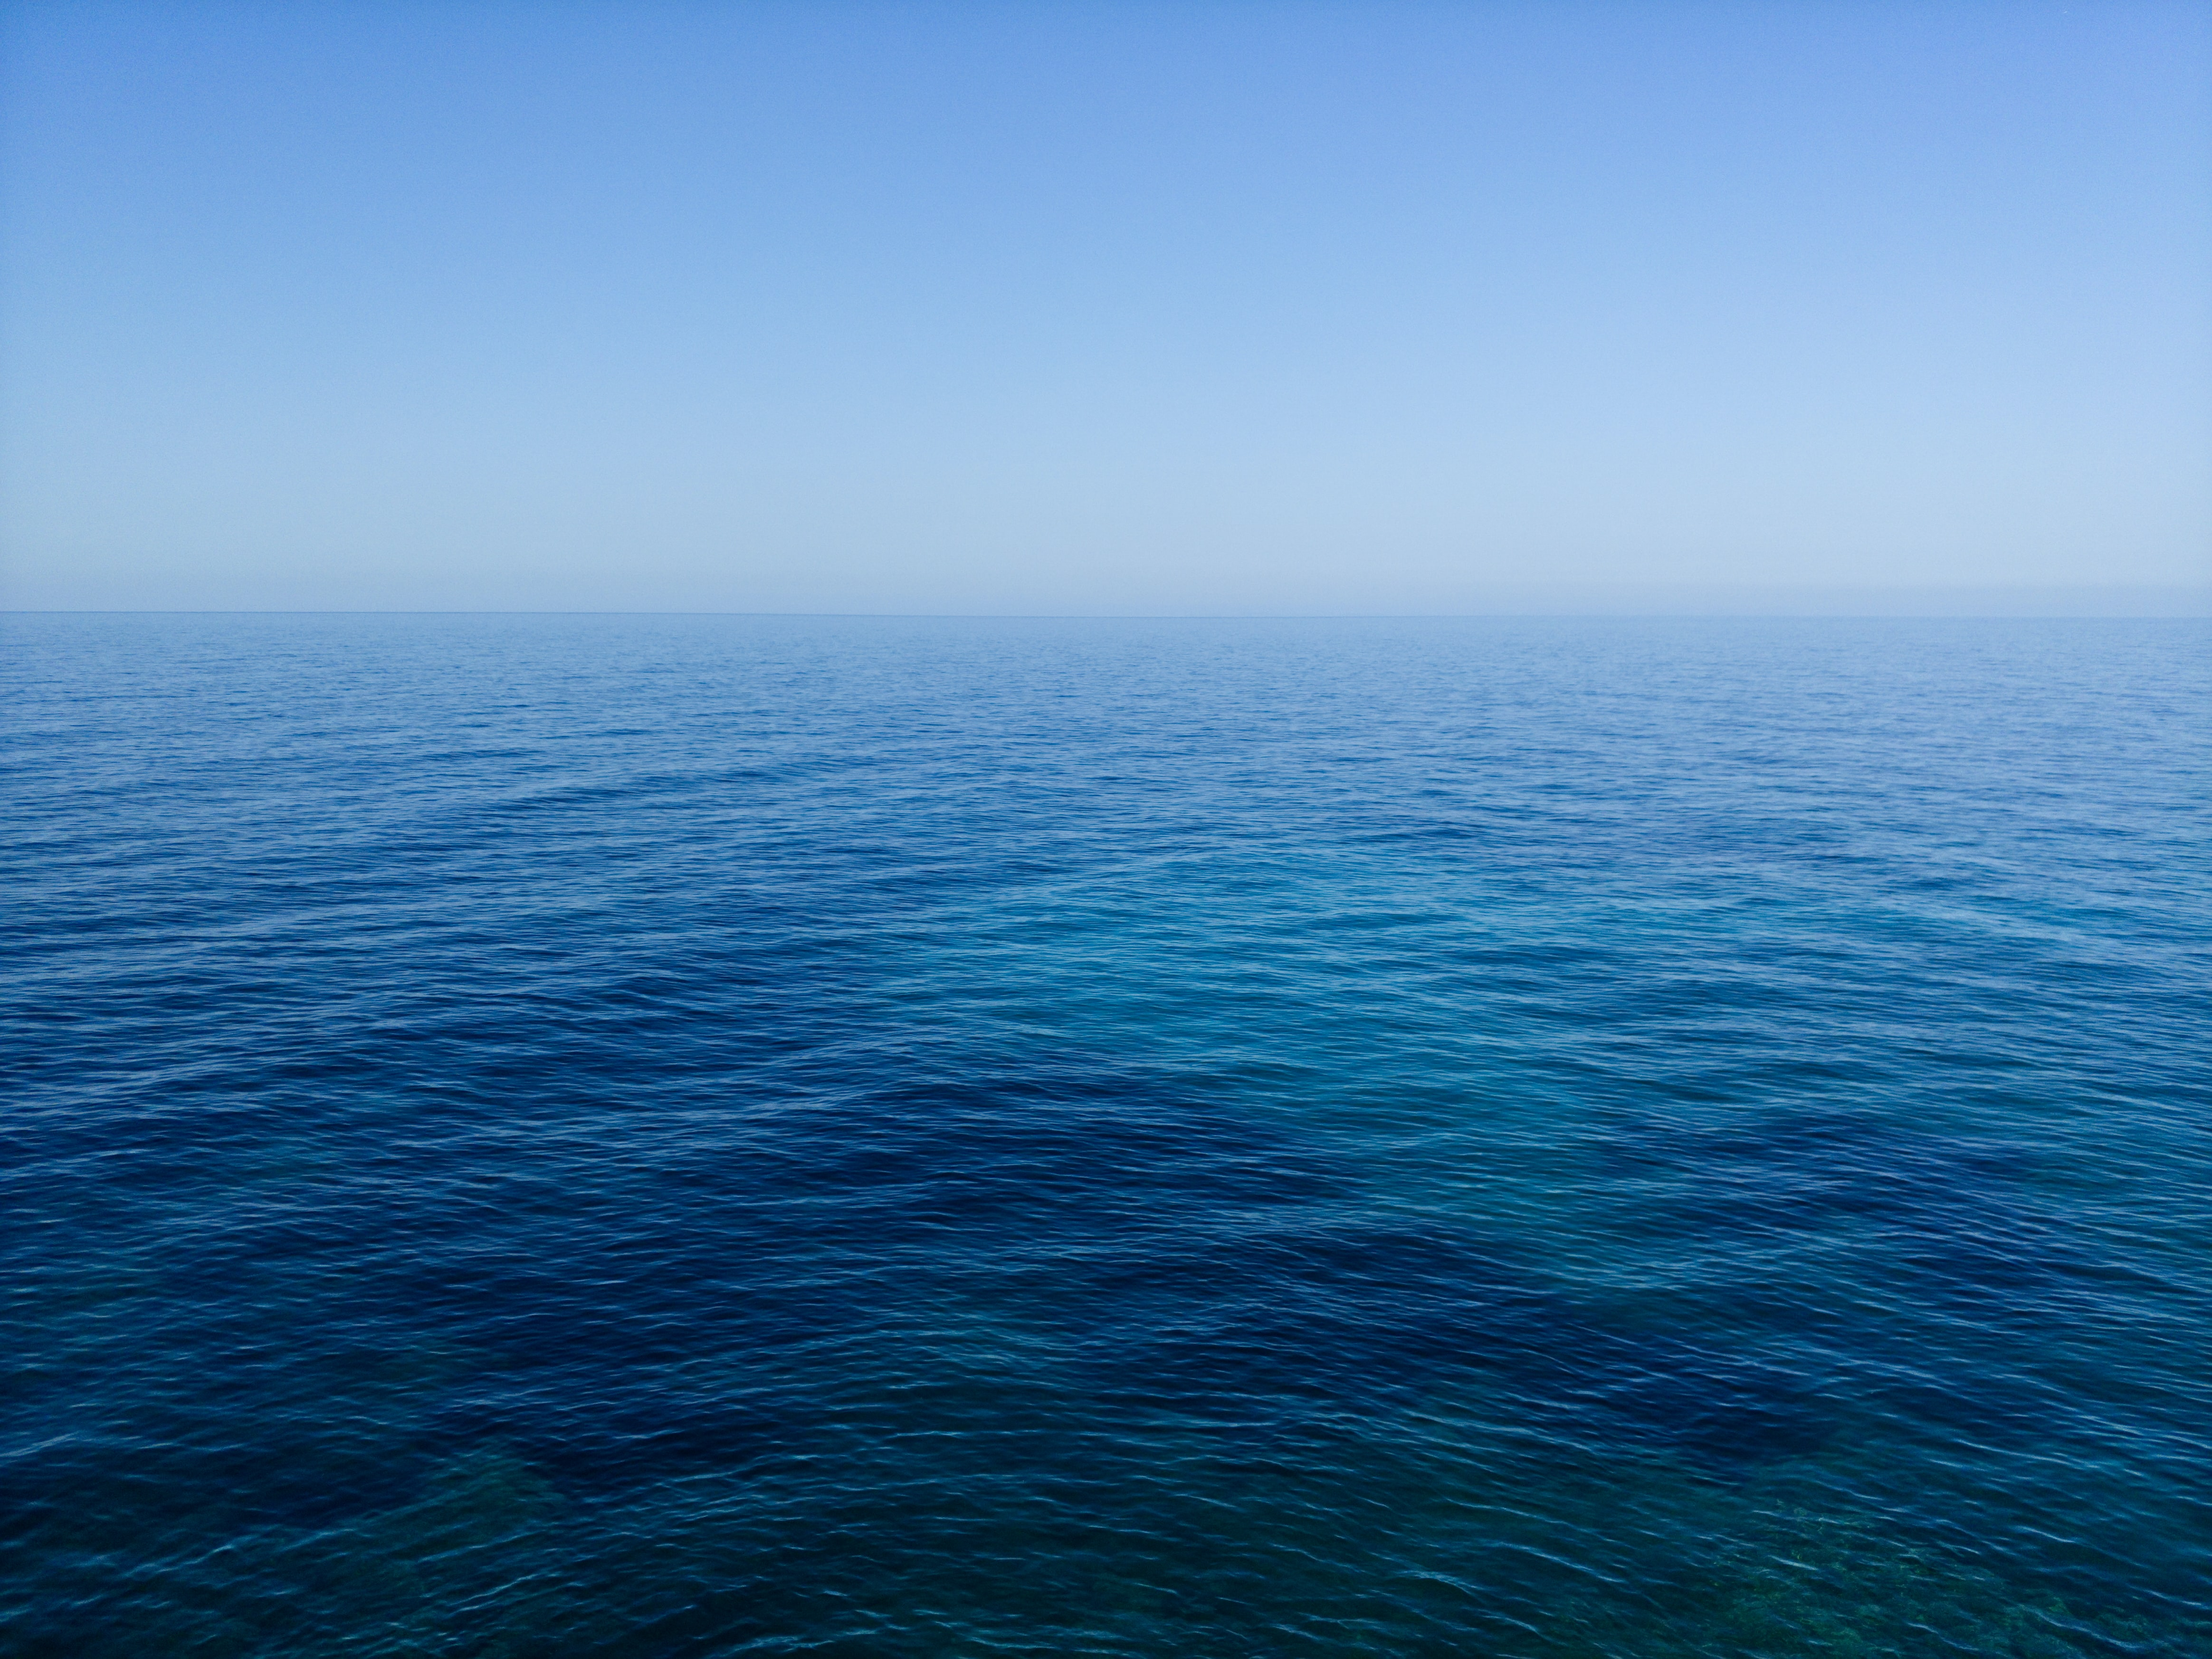 calm body of water under blue sky photography during daytime